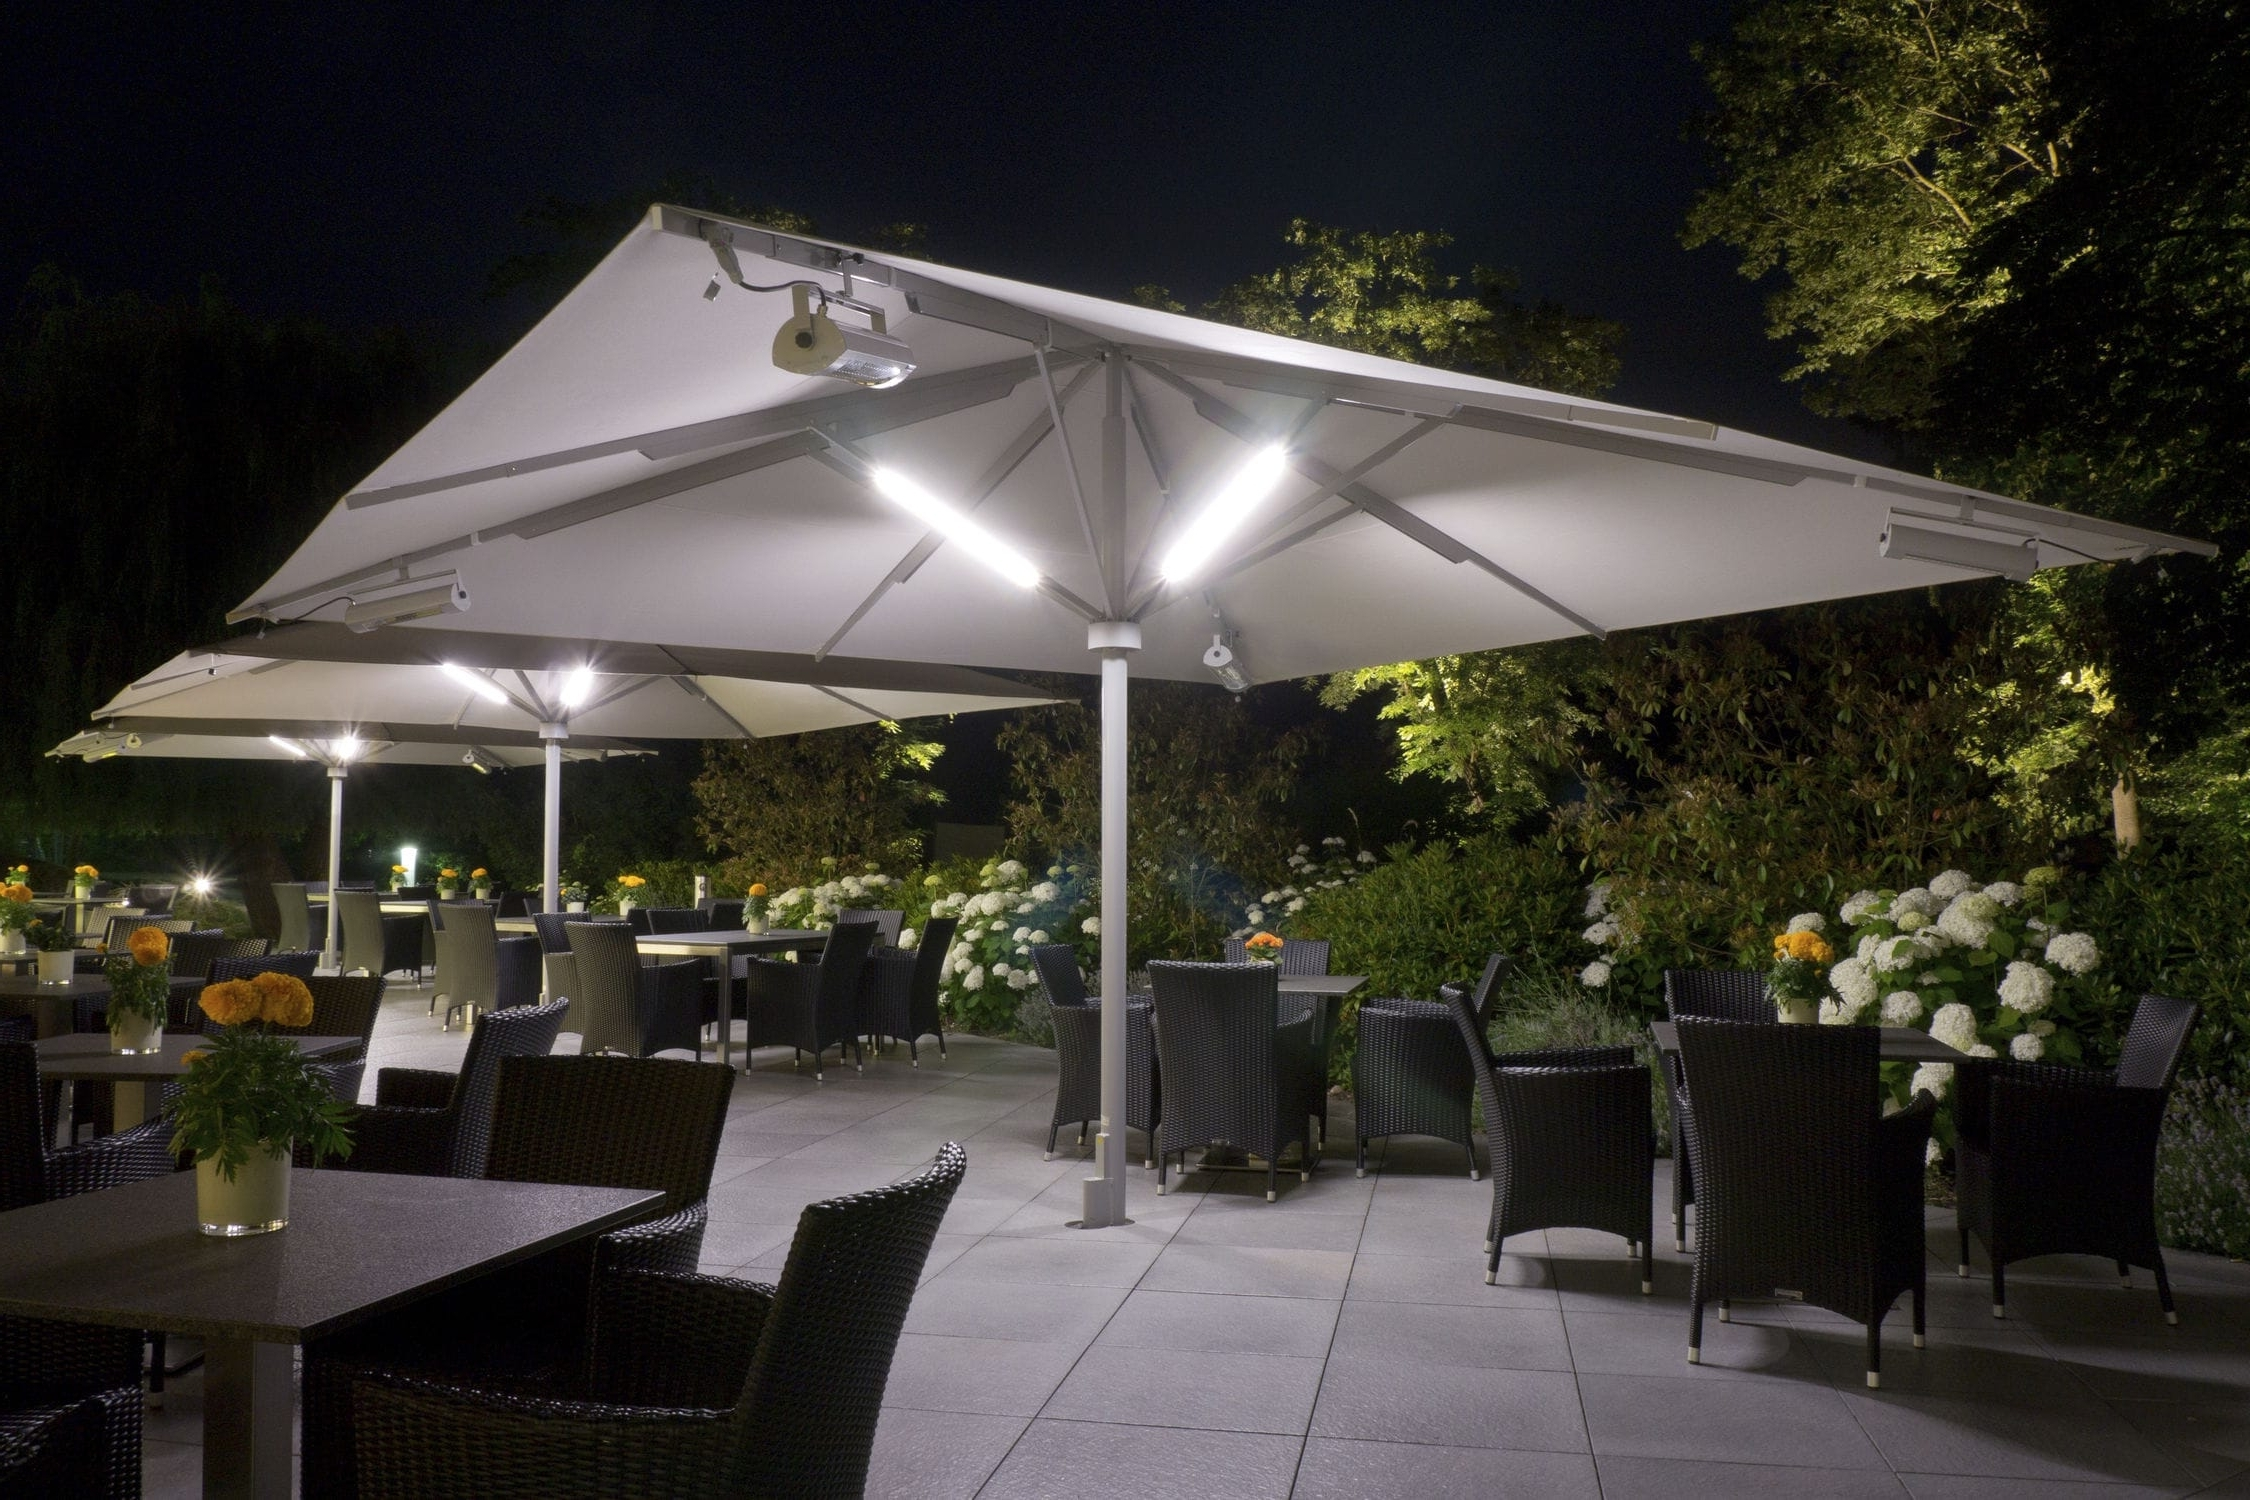 Patio Umbrellas With Solar Lights Within 2019 Best Patio Umbrella With Solar Lights And Speakers F71x About (View 20 of 20)